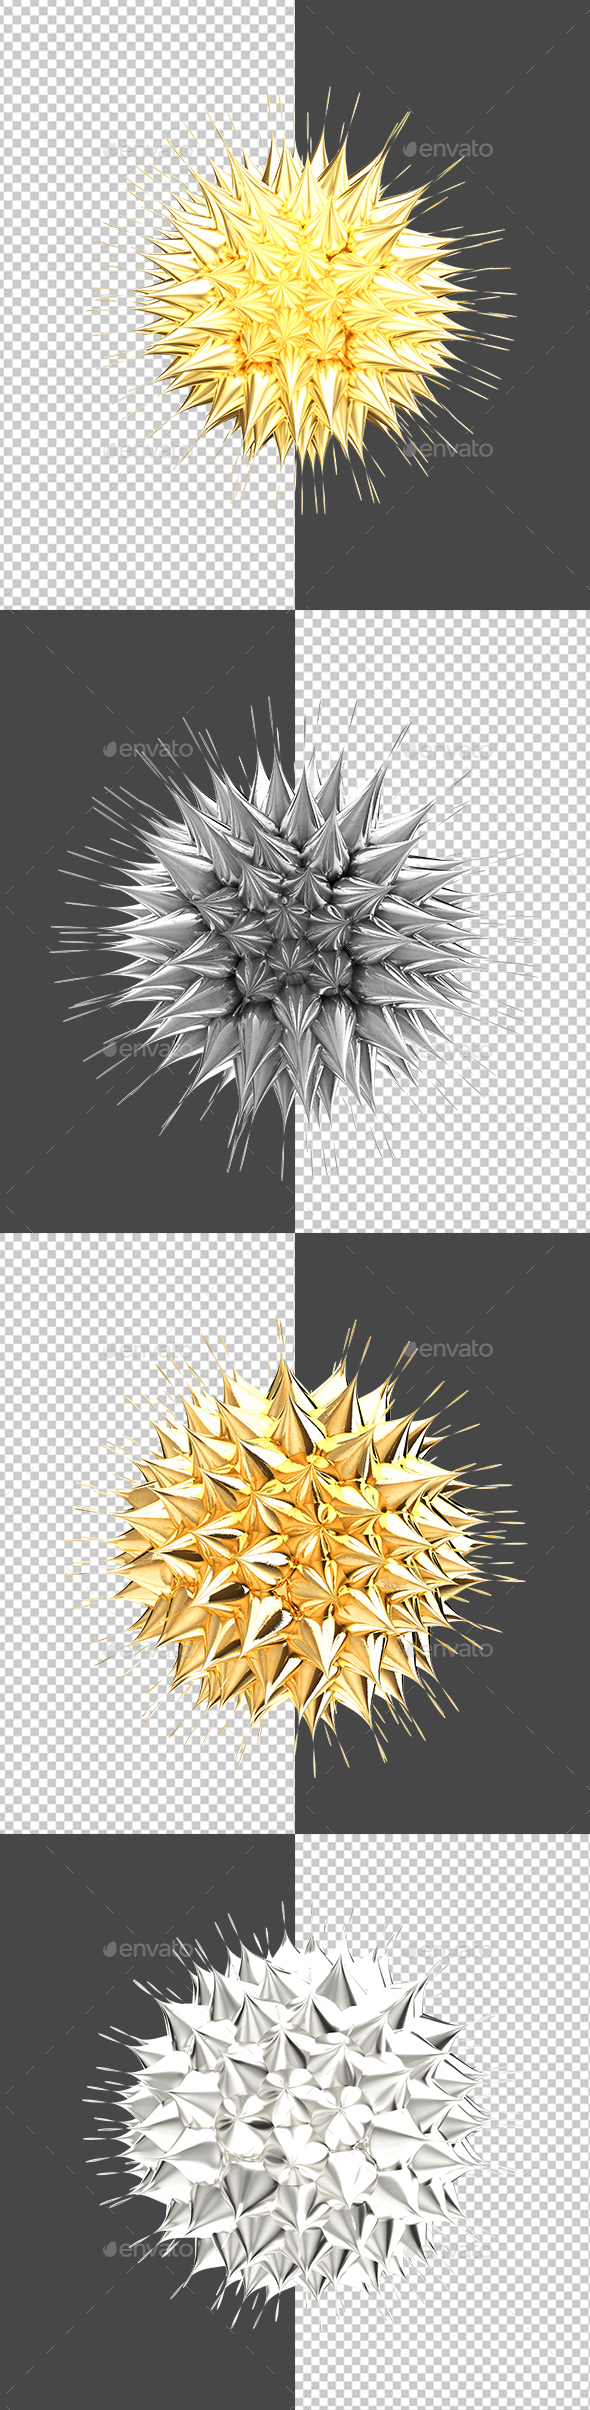 GraphicRiver Abstract Figures 20392809